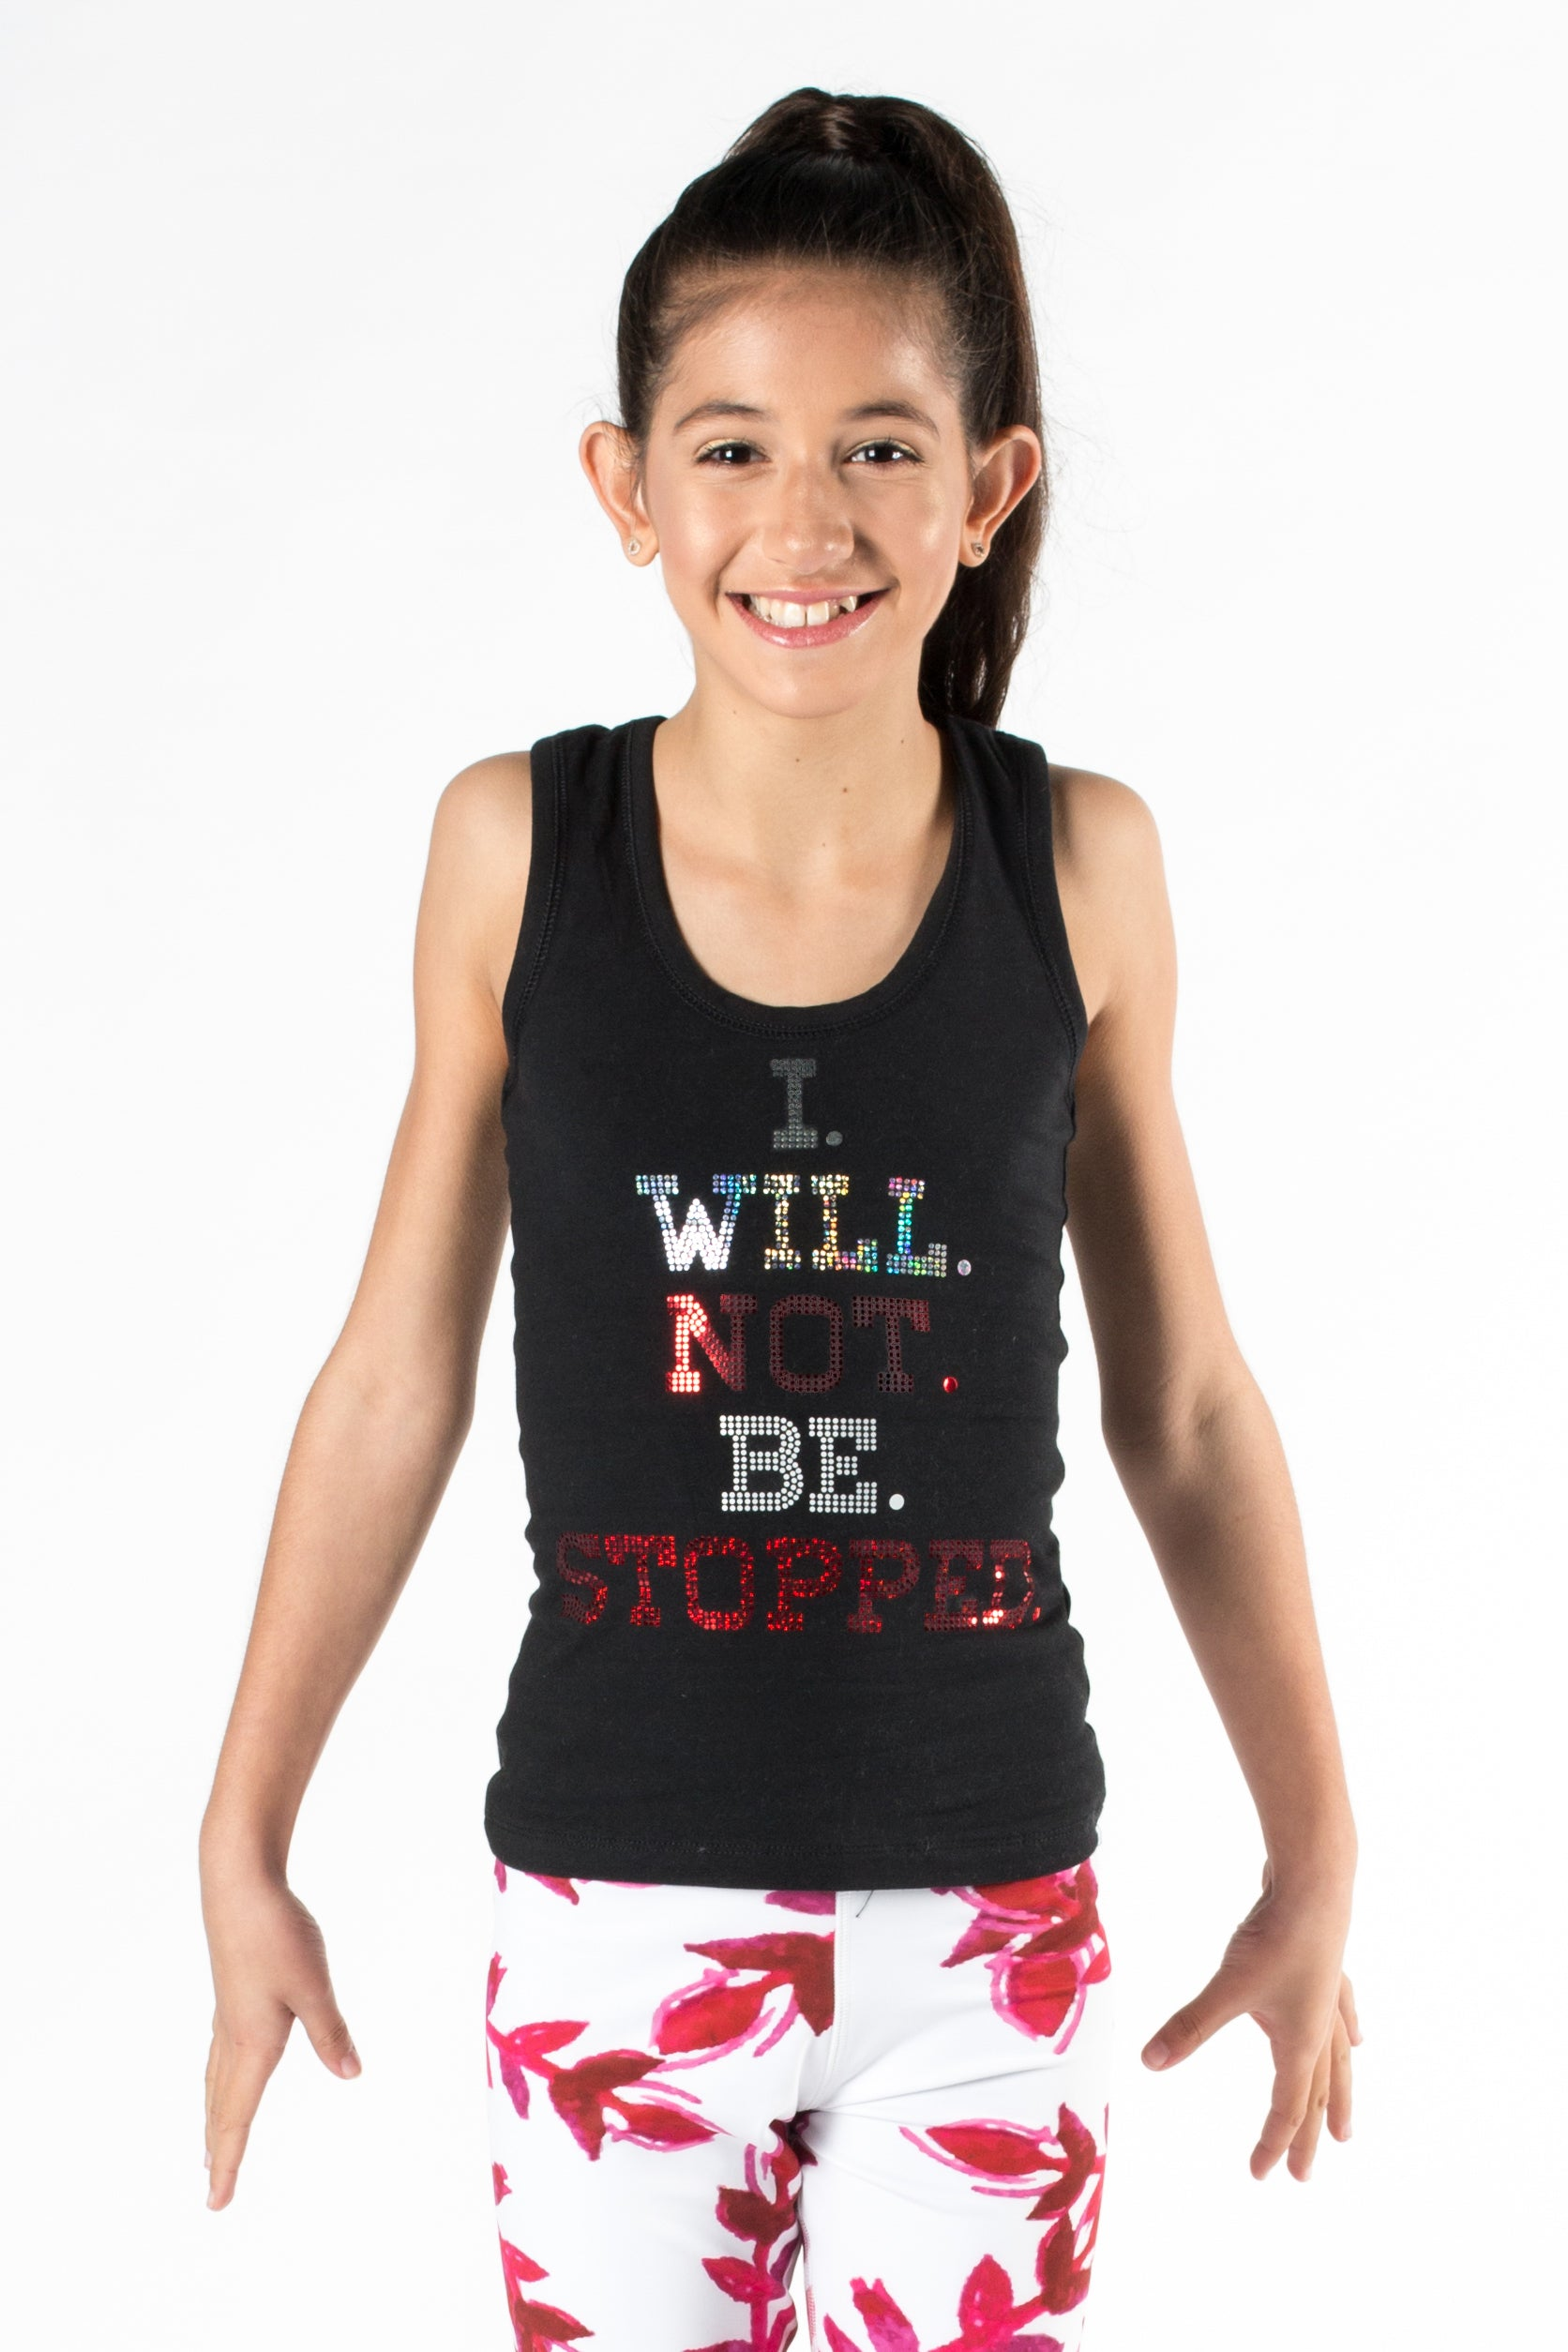 Childrens Motivational Singlet by GMD Activewear Australia